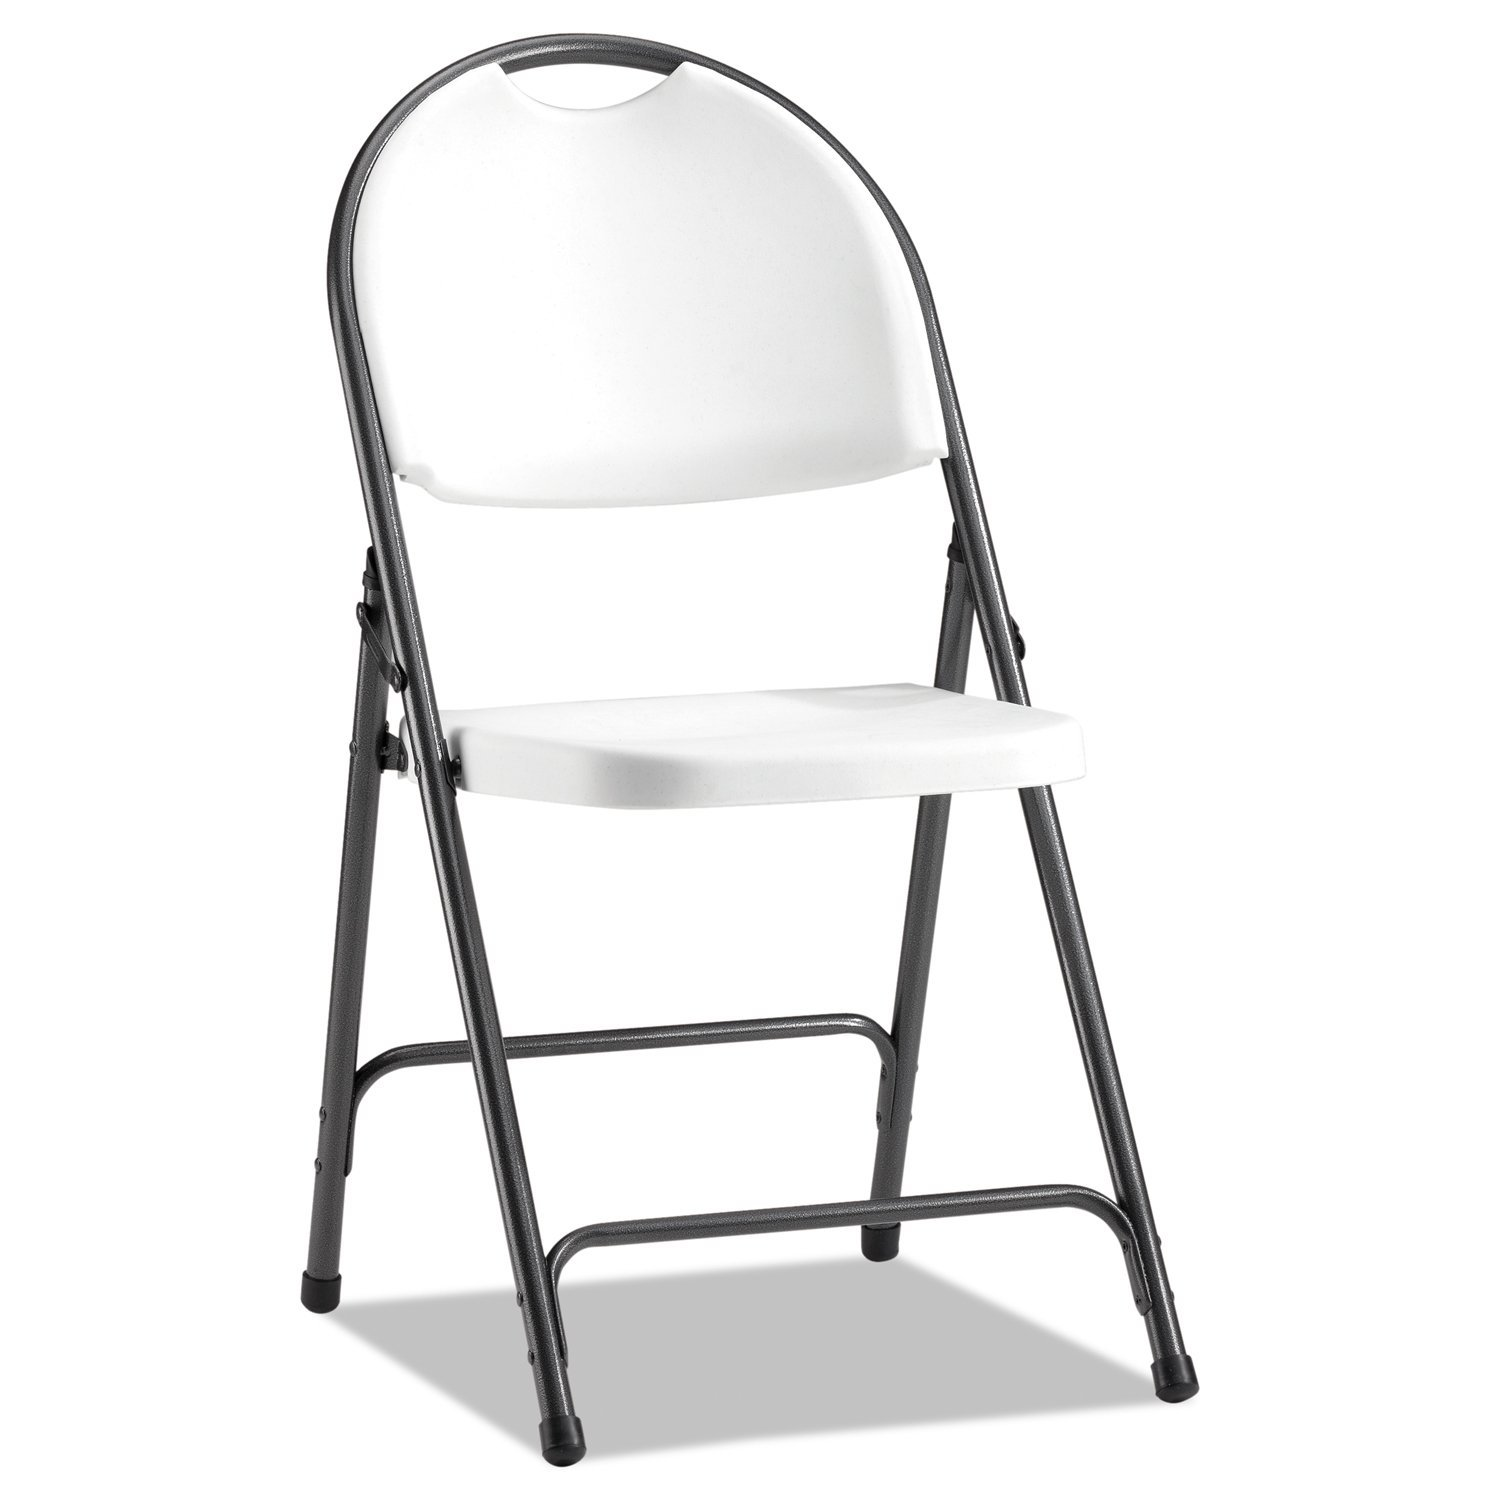 Alera CHAIR001 Molded Resin Folding Chair 4 Carton White Black